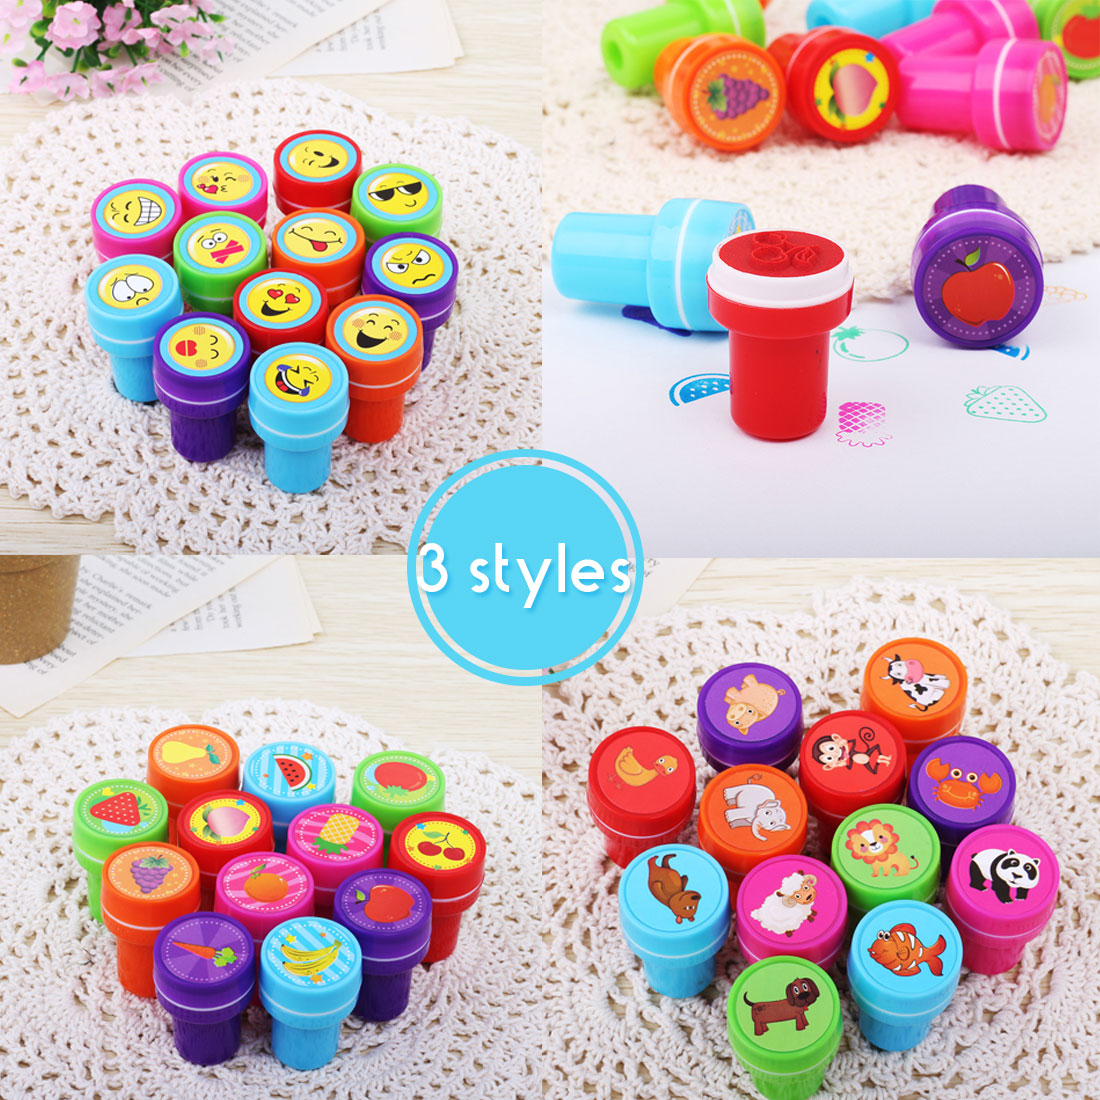 Cartoon Animals Fruits Kids Seal 12pcs Set Children Toy Round Stamps For Scrapbooking Stamper DIY Painting Photo Album Decor in Stamps from Home Garden